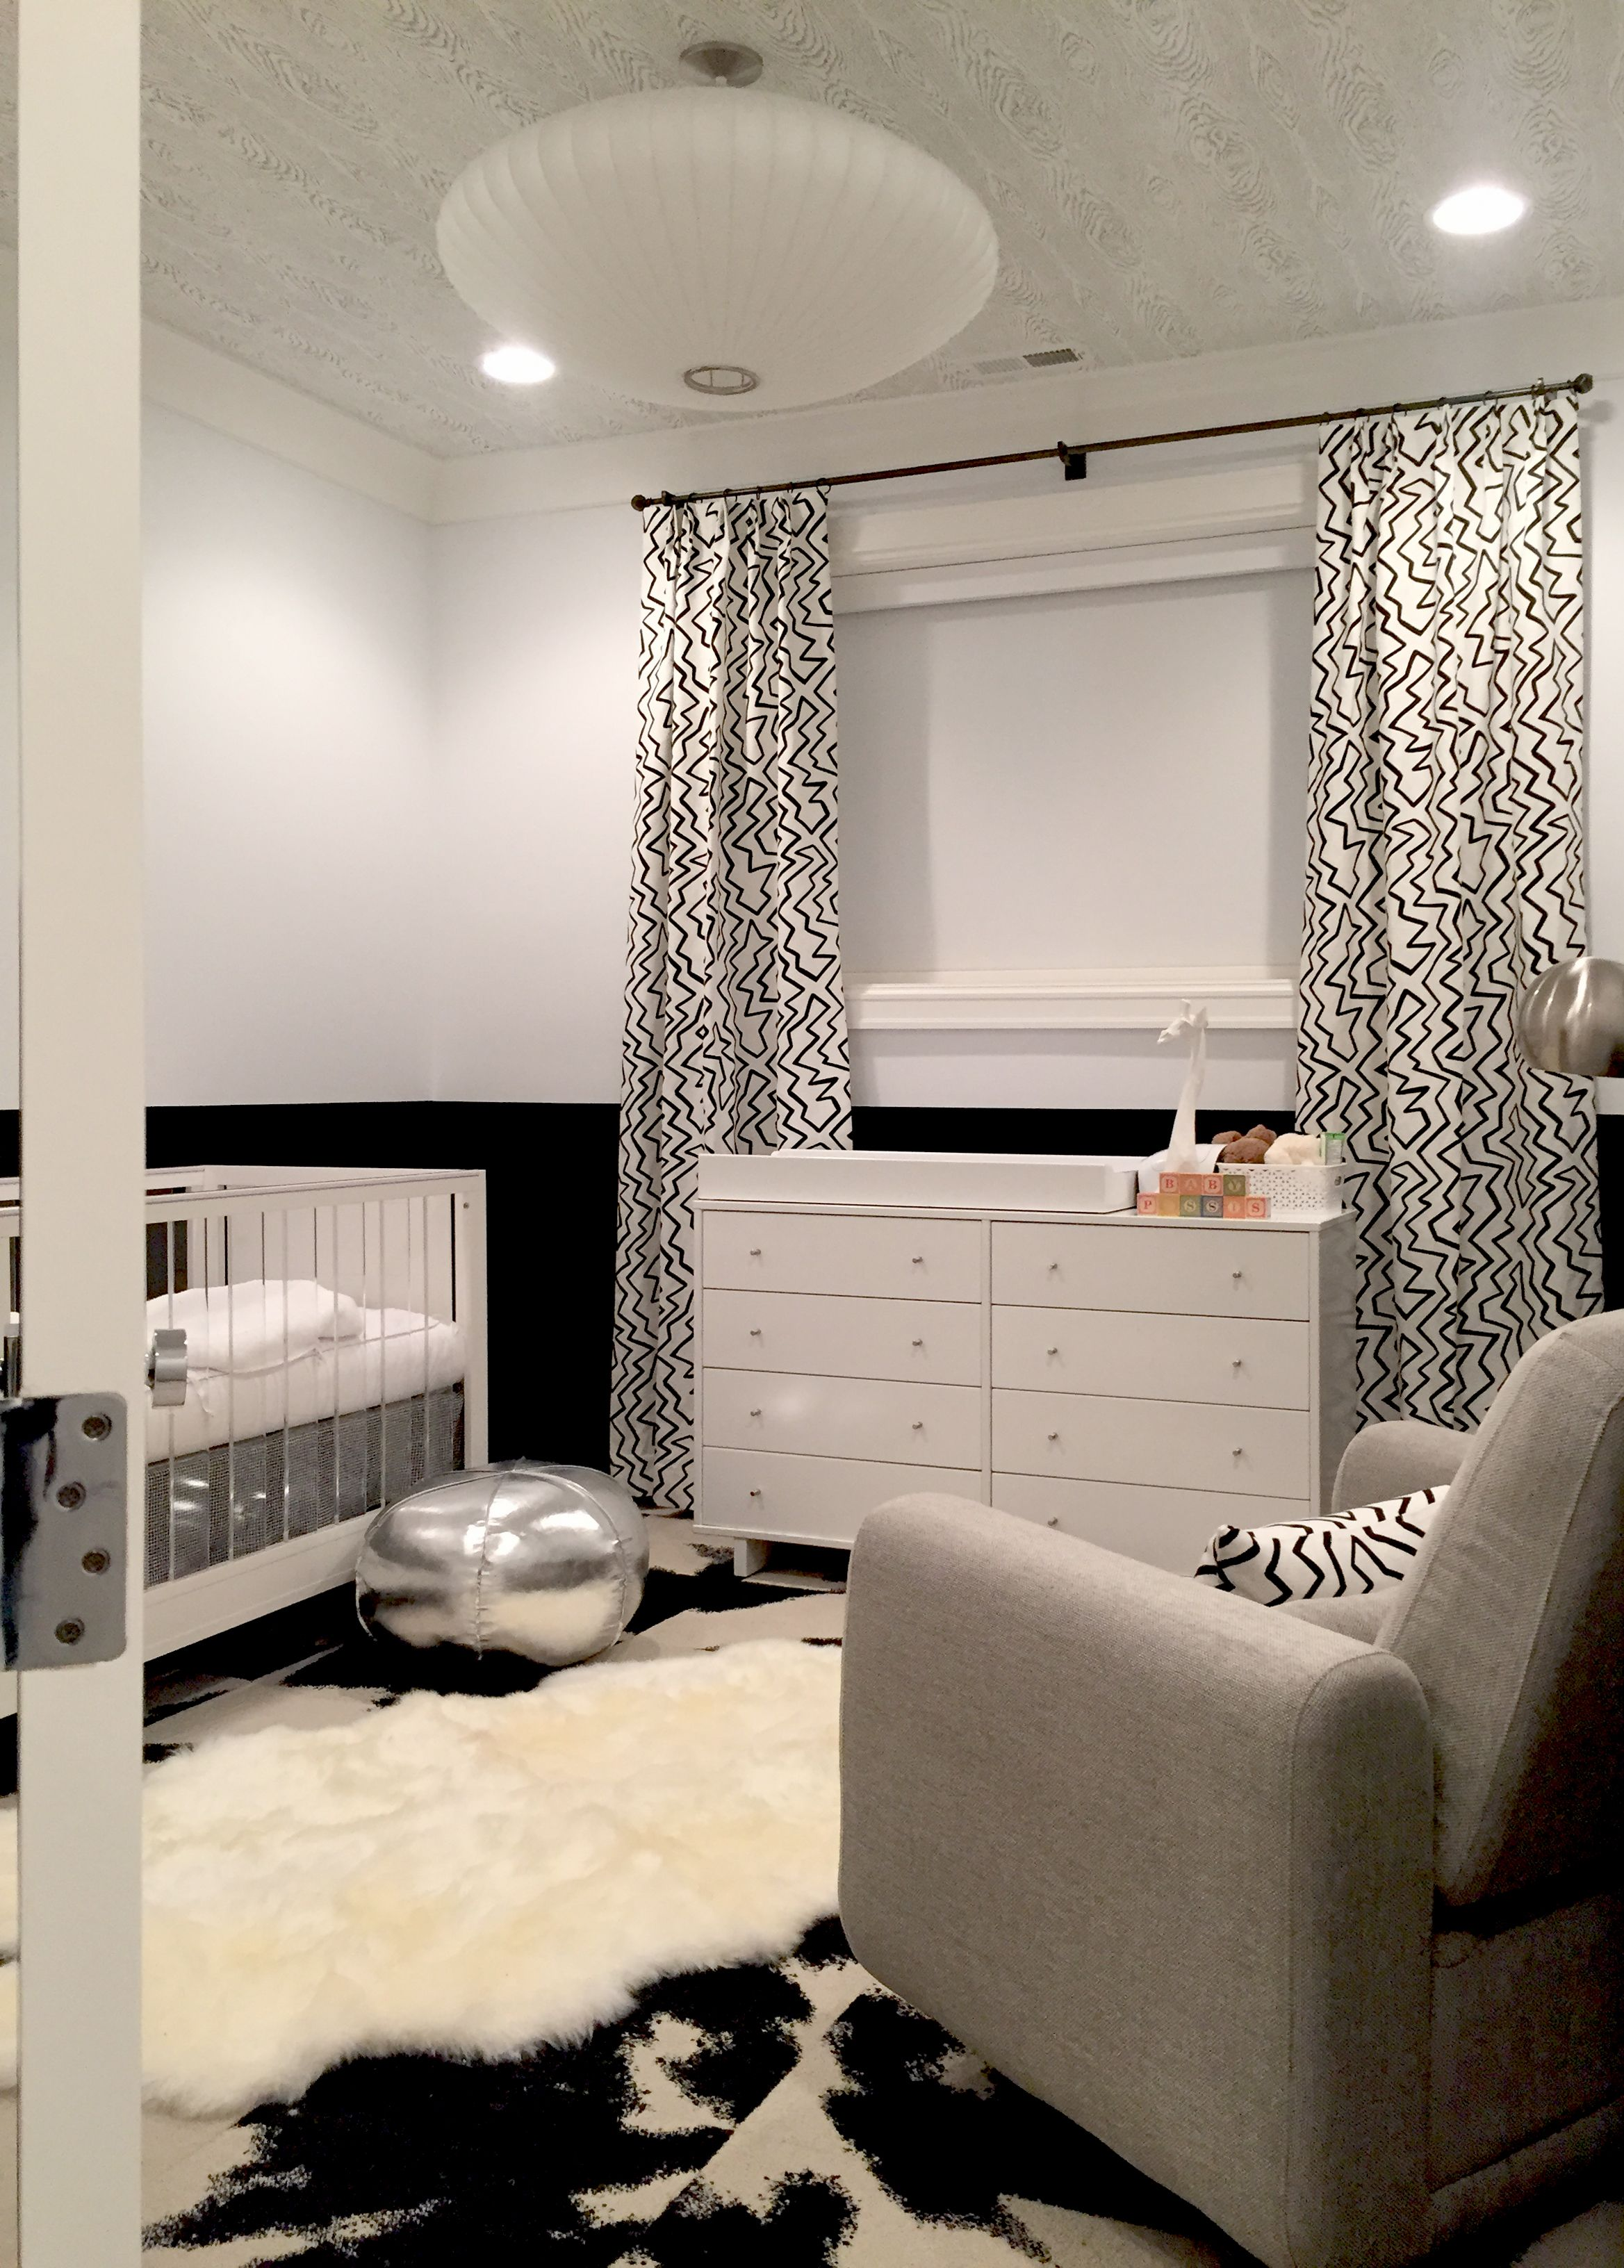 Urban Baby Nursery - black and white, cowhide rug, print fabric from Lee Jofa on custom drapery